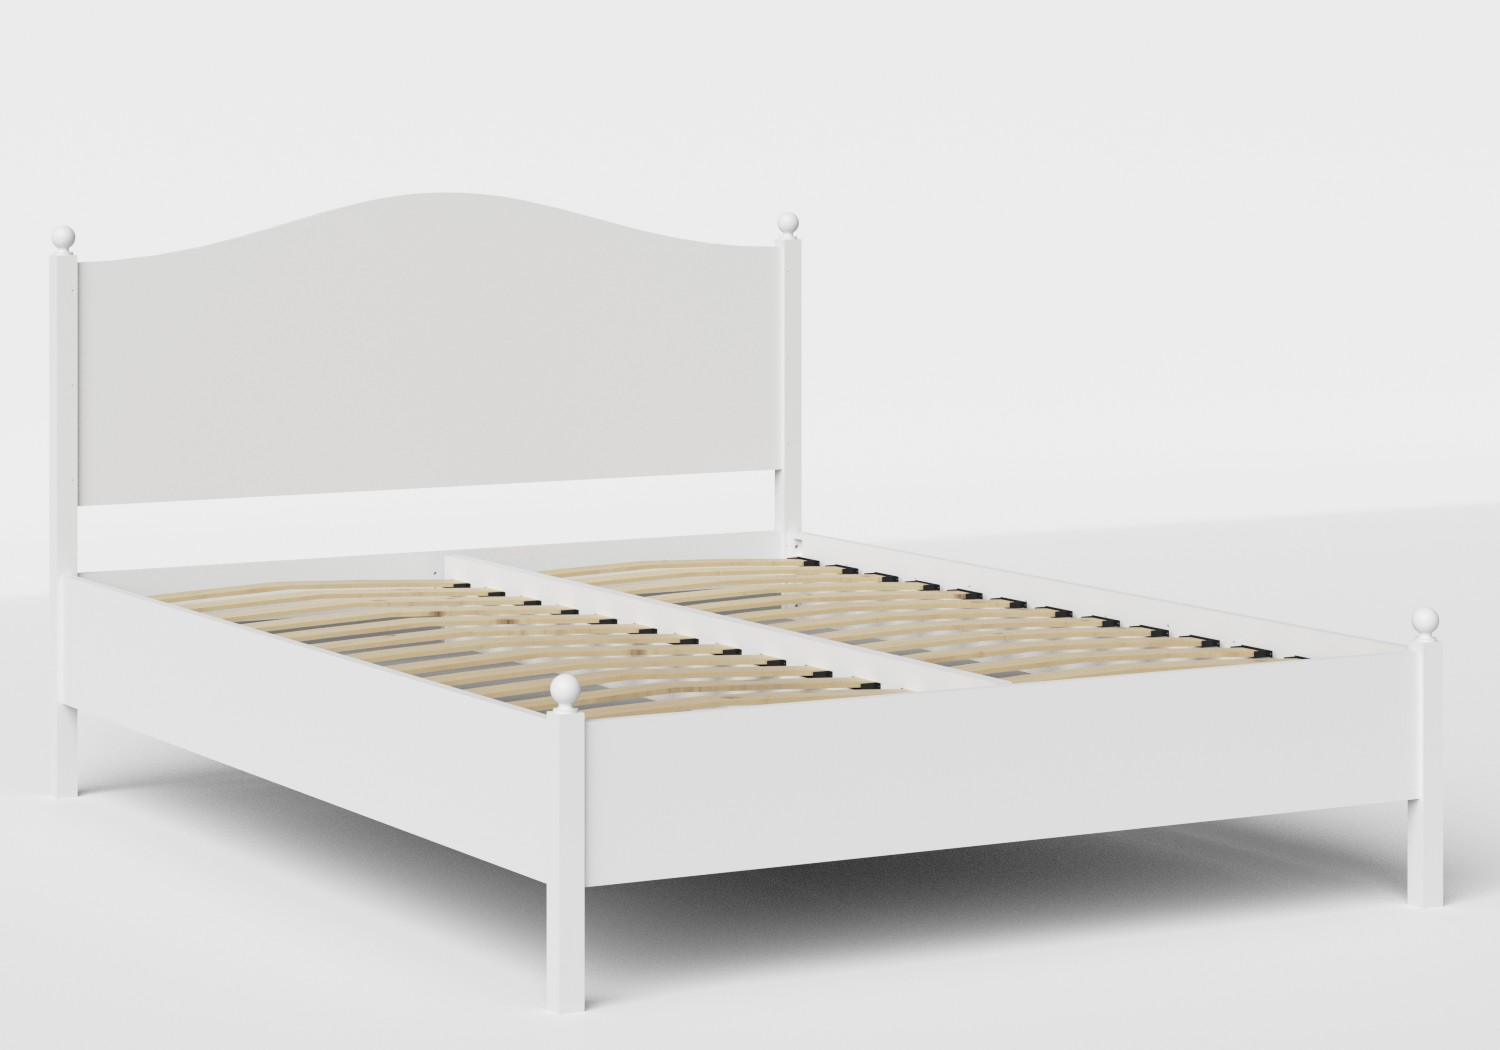 Brady Wood Bed in White shown with slatted frame